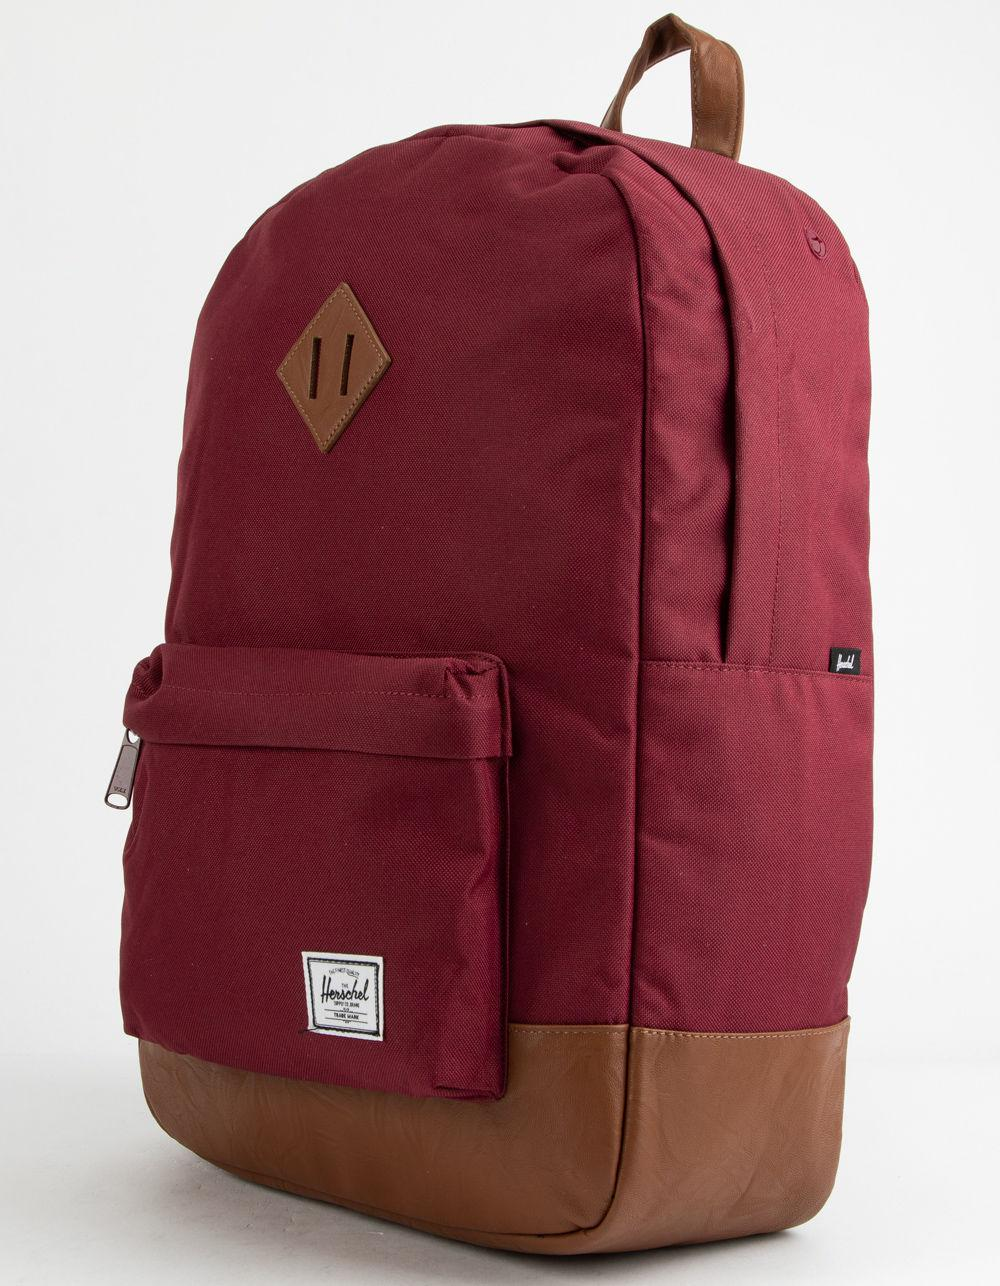 ef9bea45d42 Lyst - Herschel Supply Co. Heritage Windsor Wine   Tan Backpack in Red for  Men - Save 35.593220338983045%